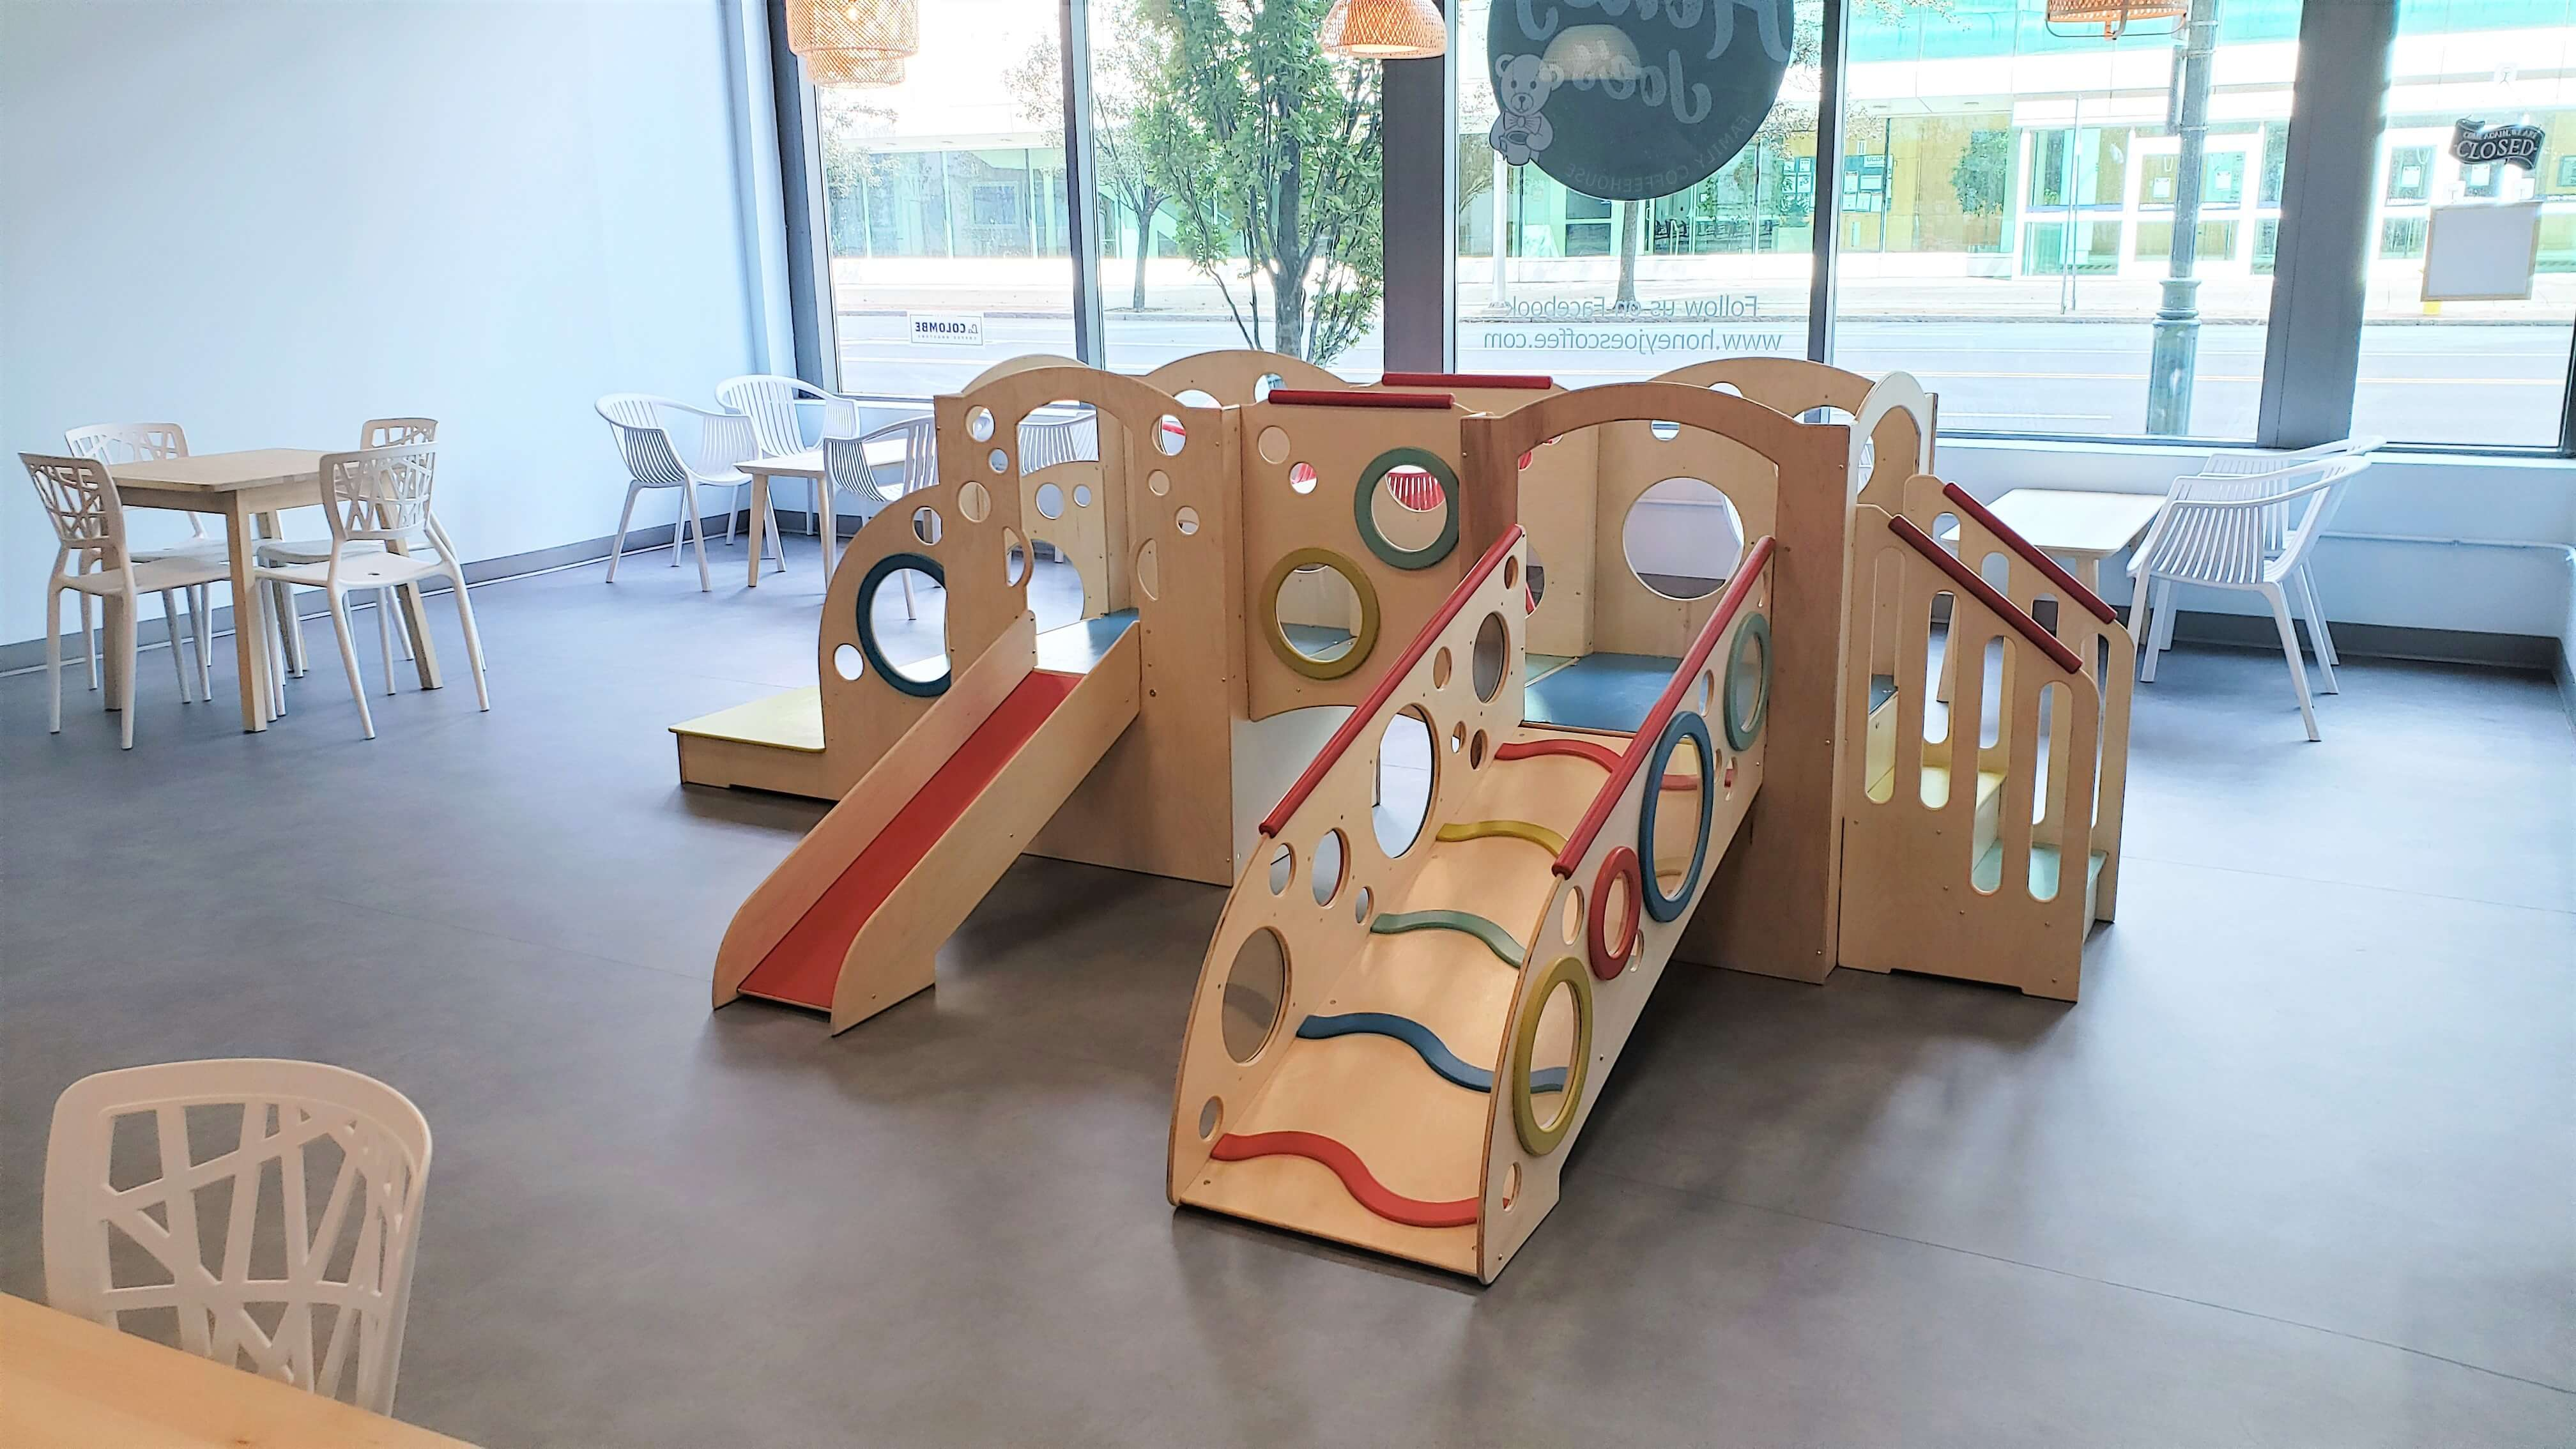 Crawler and early walker play structure